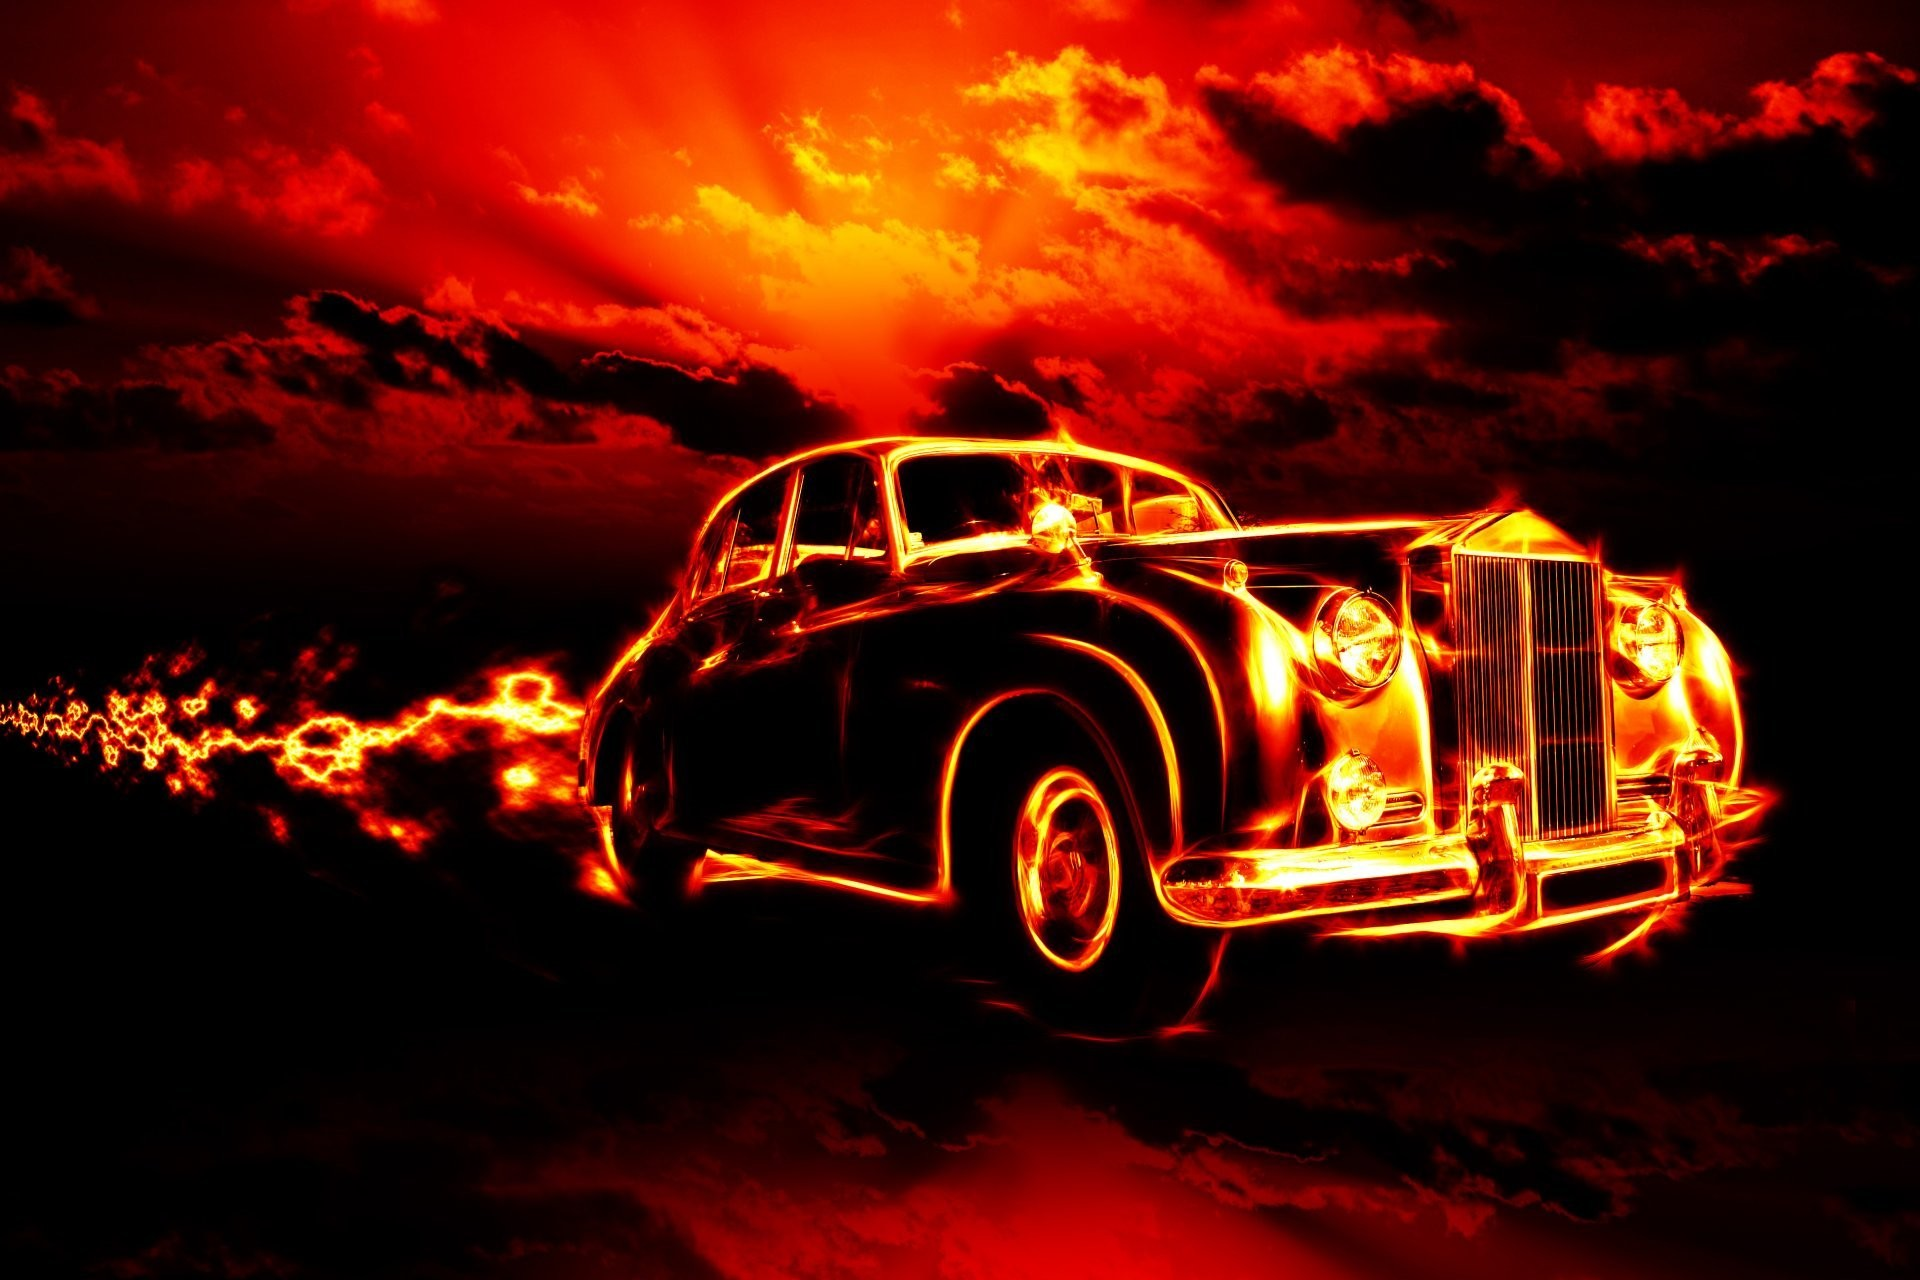 fire flame hell classic car city red sky clouds horror ghost rider creepy  smoke fire flame